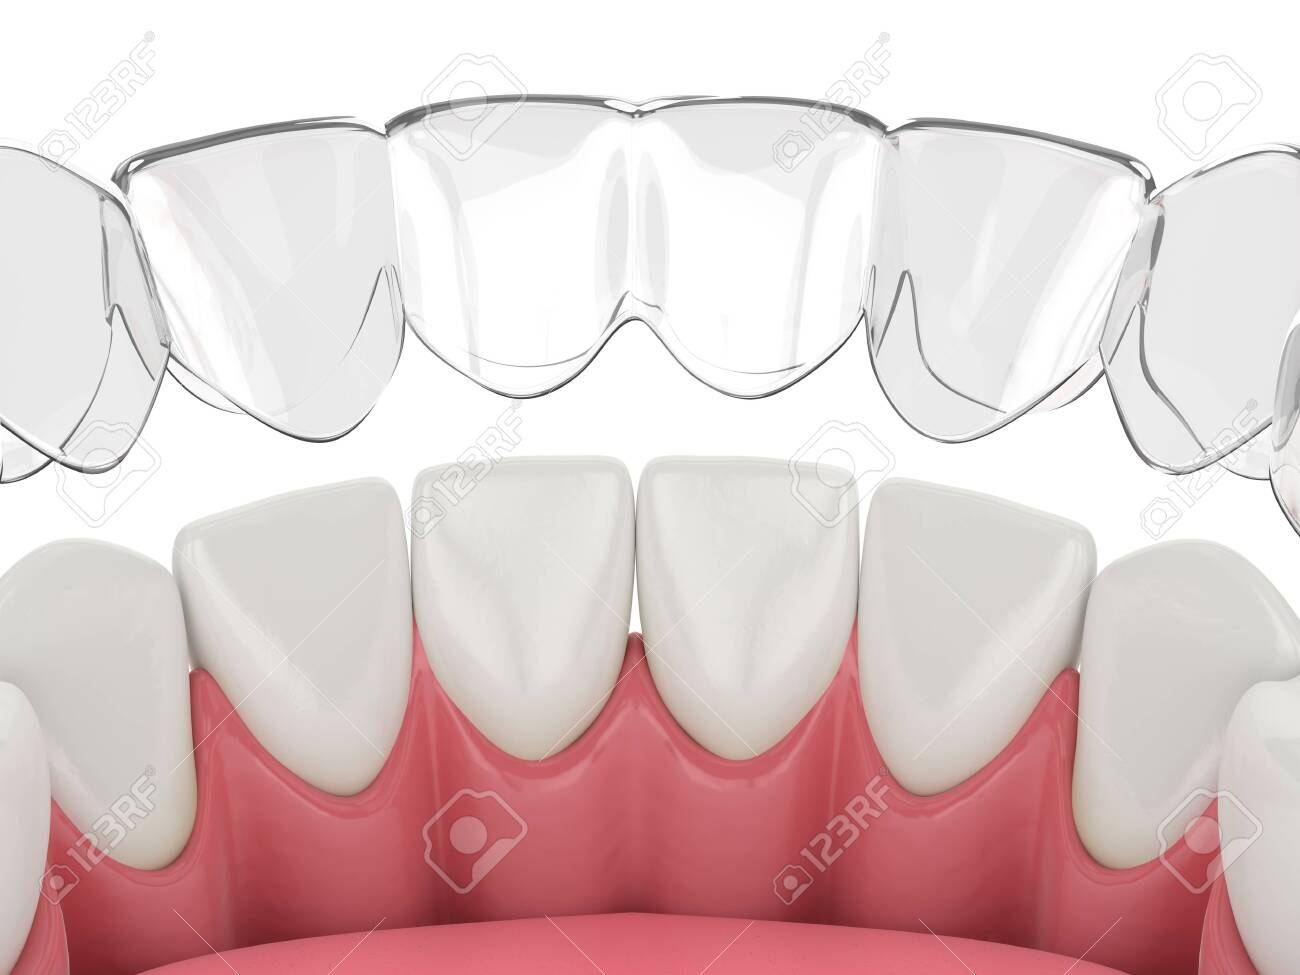 3d render of invisalign removable and invisible retainer with lower jaw over white background - 141655928